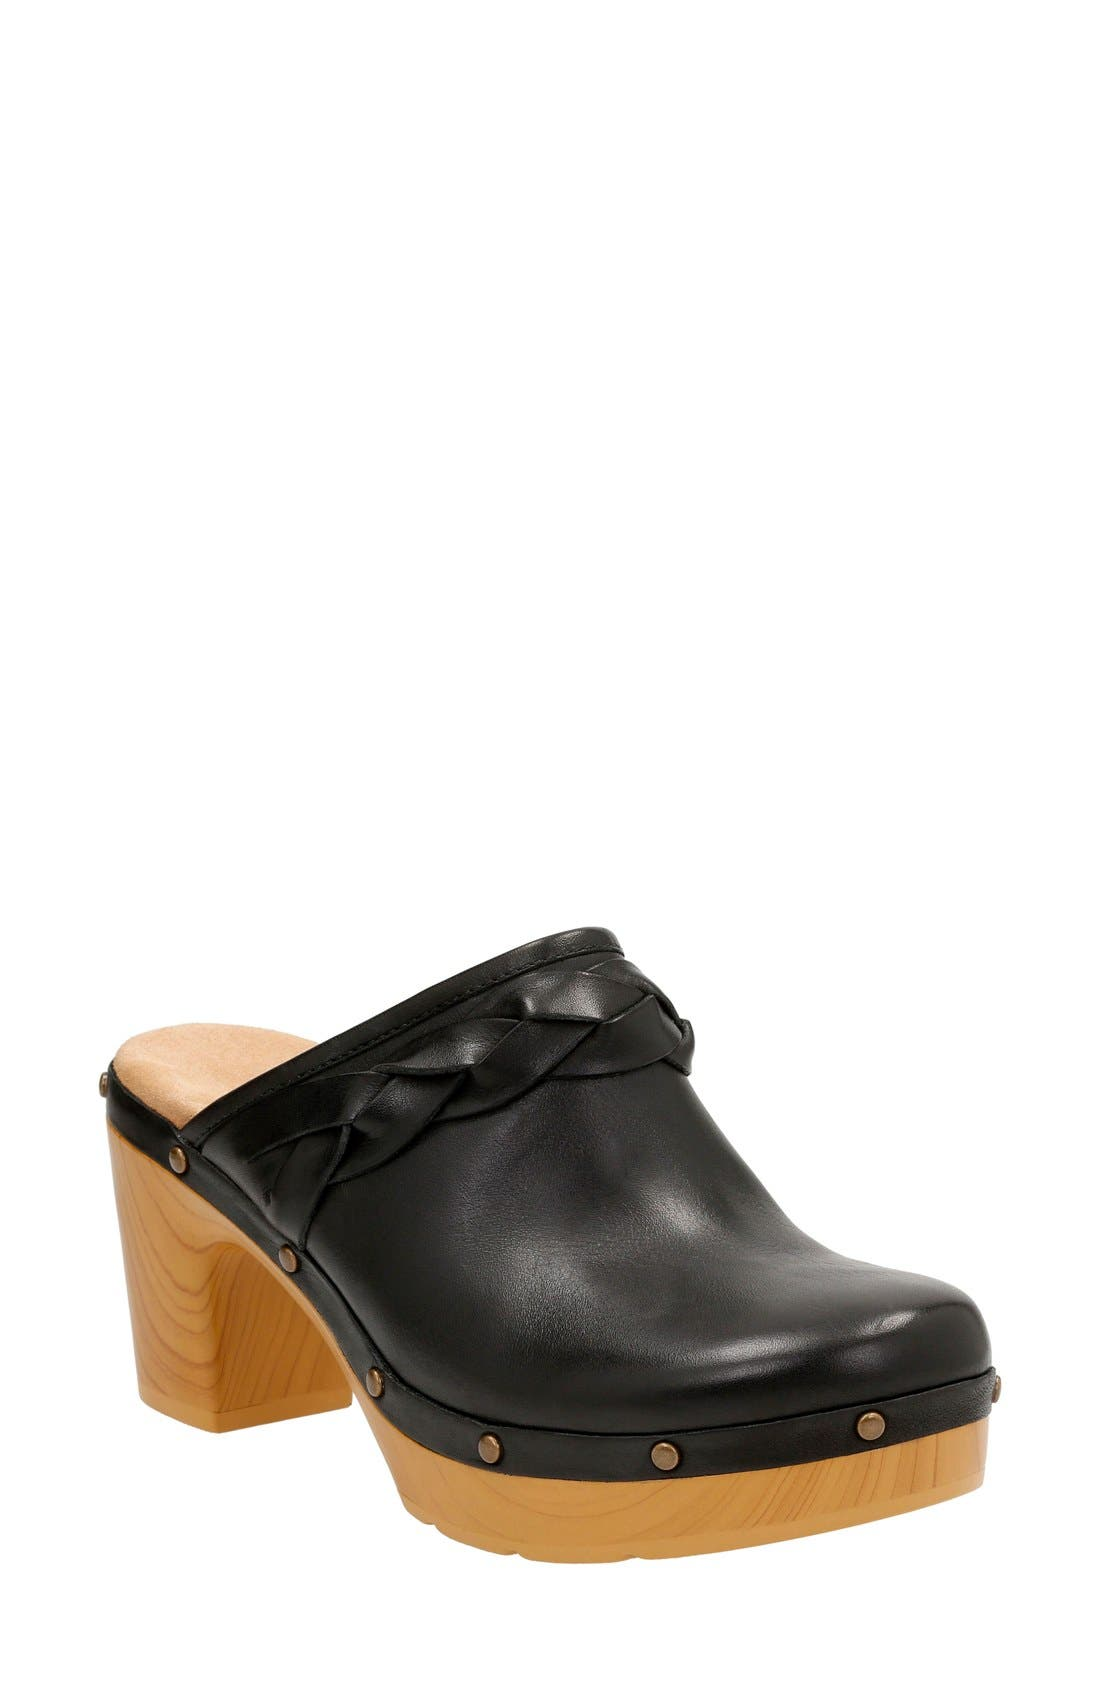 Ledella Meg Platform Clog,                             Main thumbnail 1, color,                             Black Leather